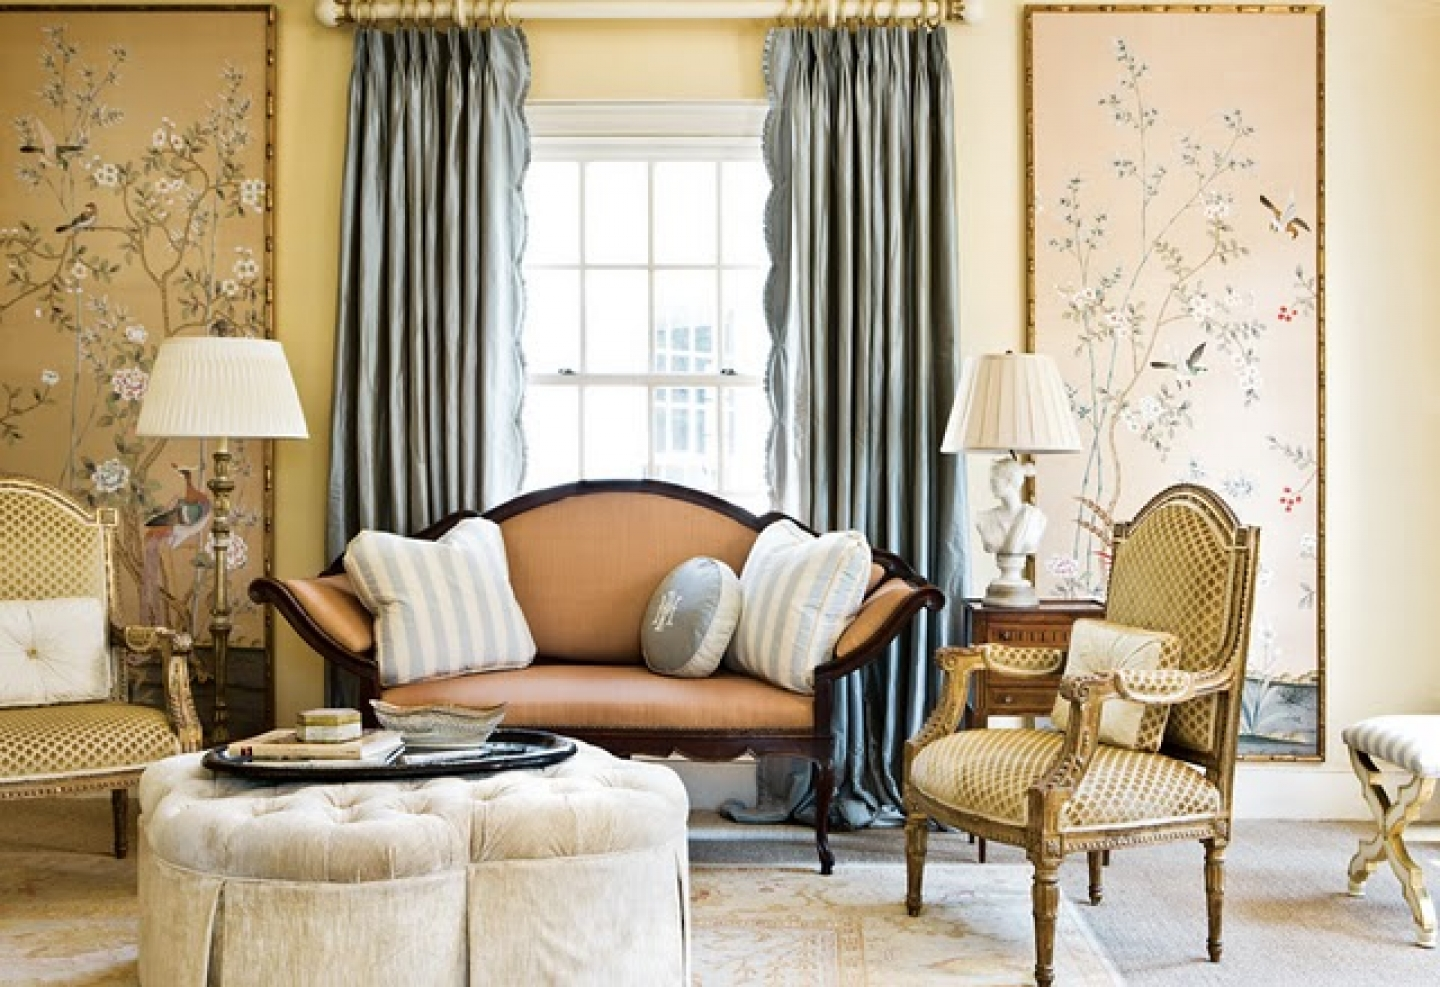 living-room-idea-curtains-drapes